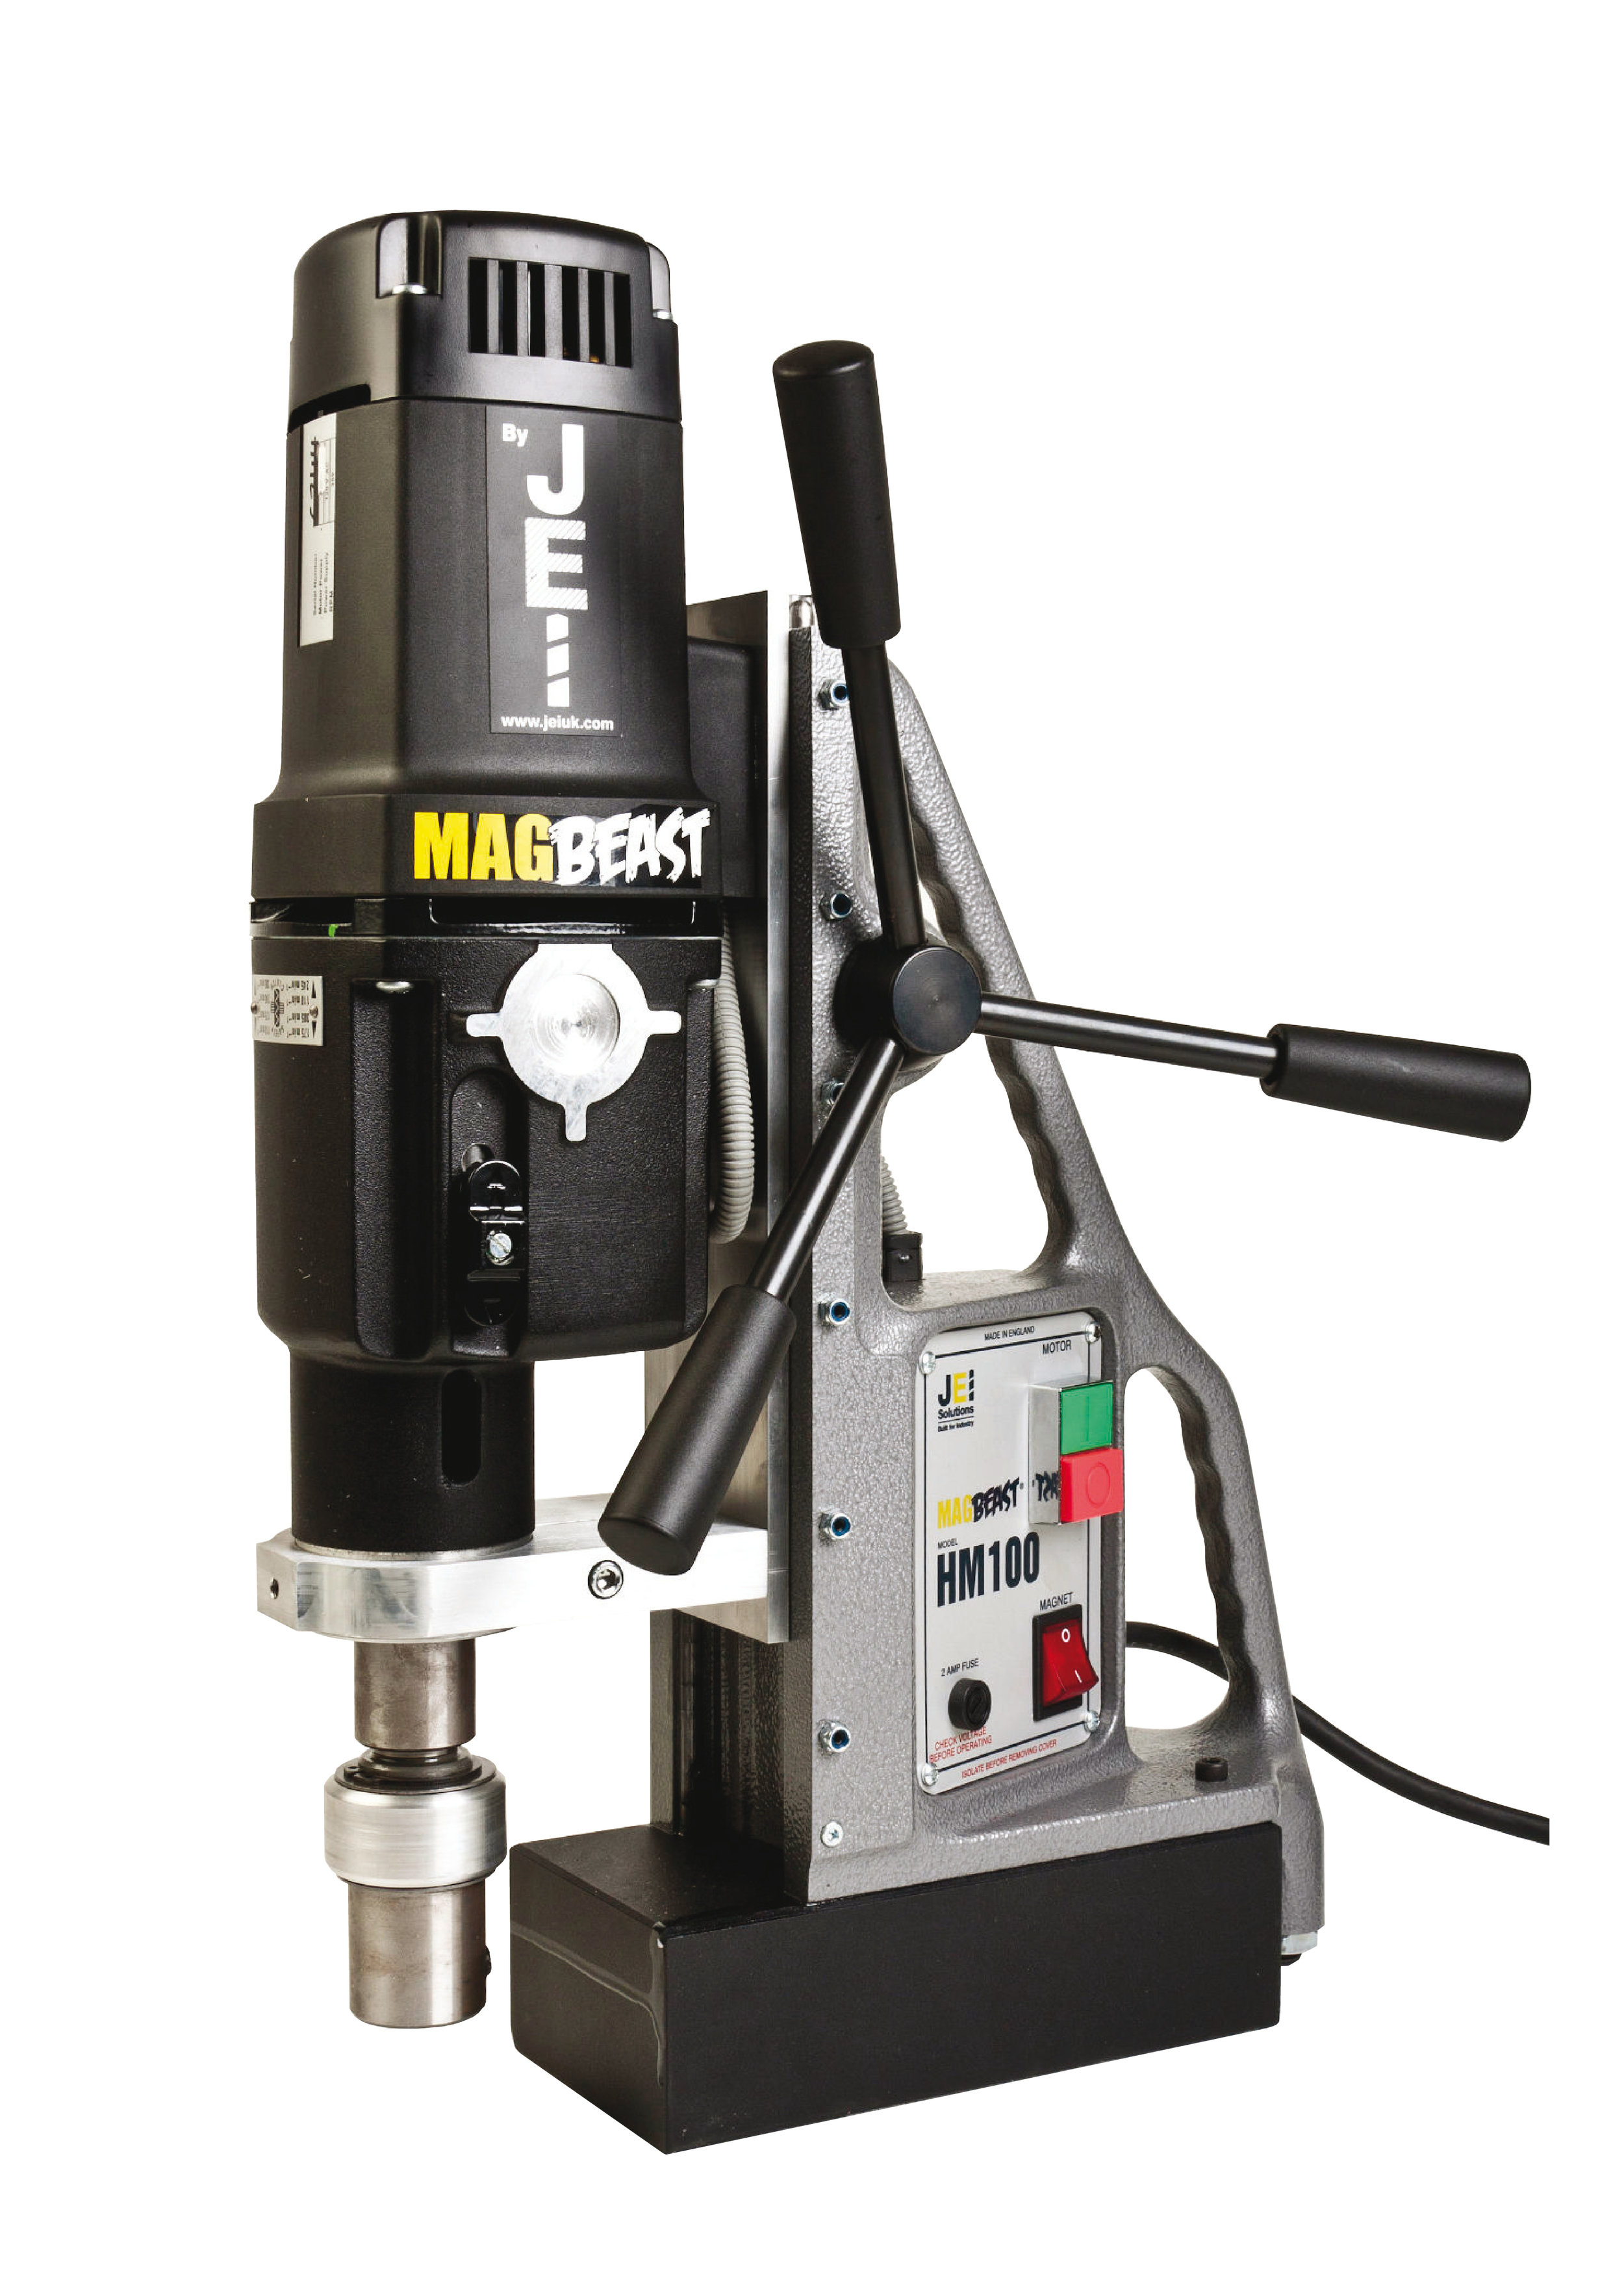 HM100 MAGNETIC DRILL - Heavy duty 1800 watt motor (HM100T) - Enables larger cutting capacity.Weighs on 20kgs and 100mm cutter capacity - Unrivalled weight to cutting capacity ratio.4 speed gear box (or 2 speed variable - HM100T) - Ideal for a wide selection of cutting operations.250mm total drill travel - Facility to use 150mm (6